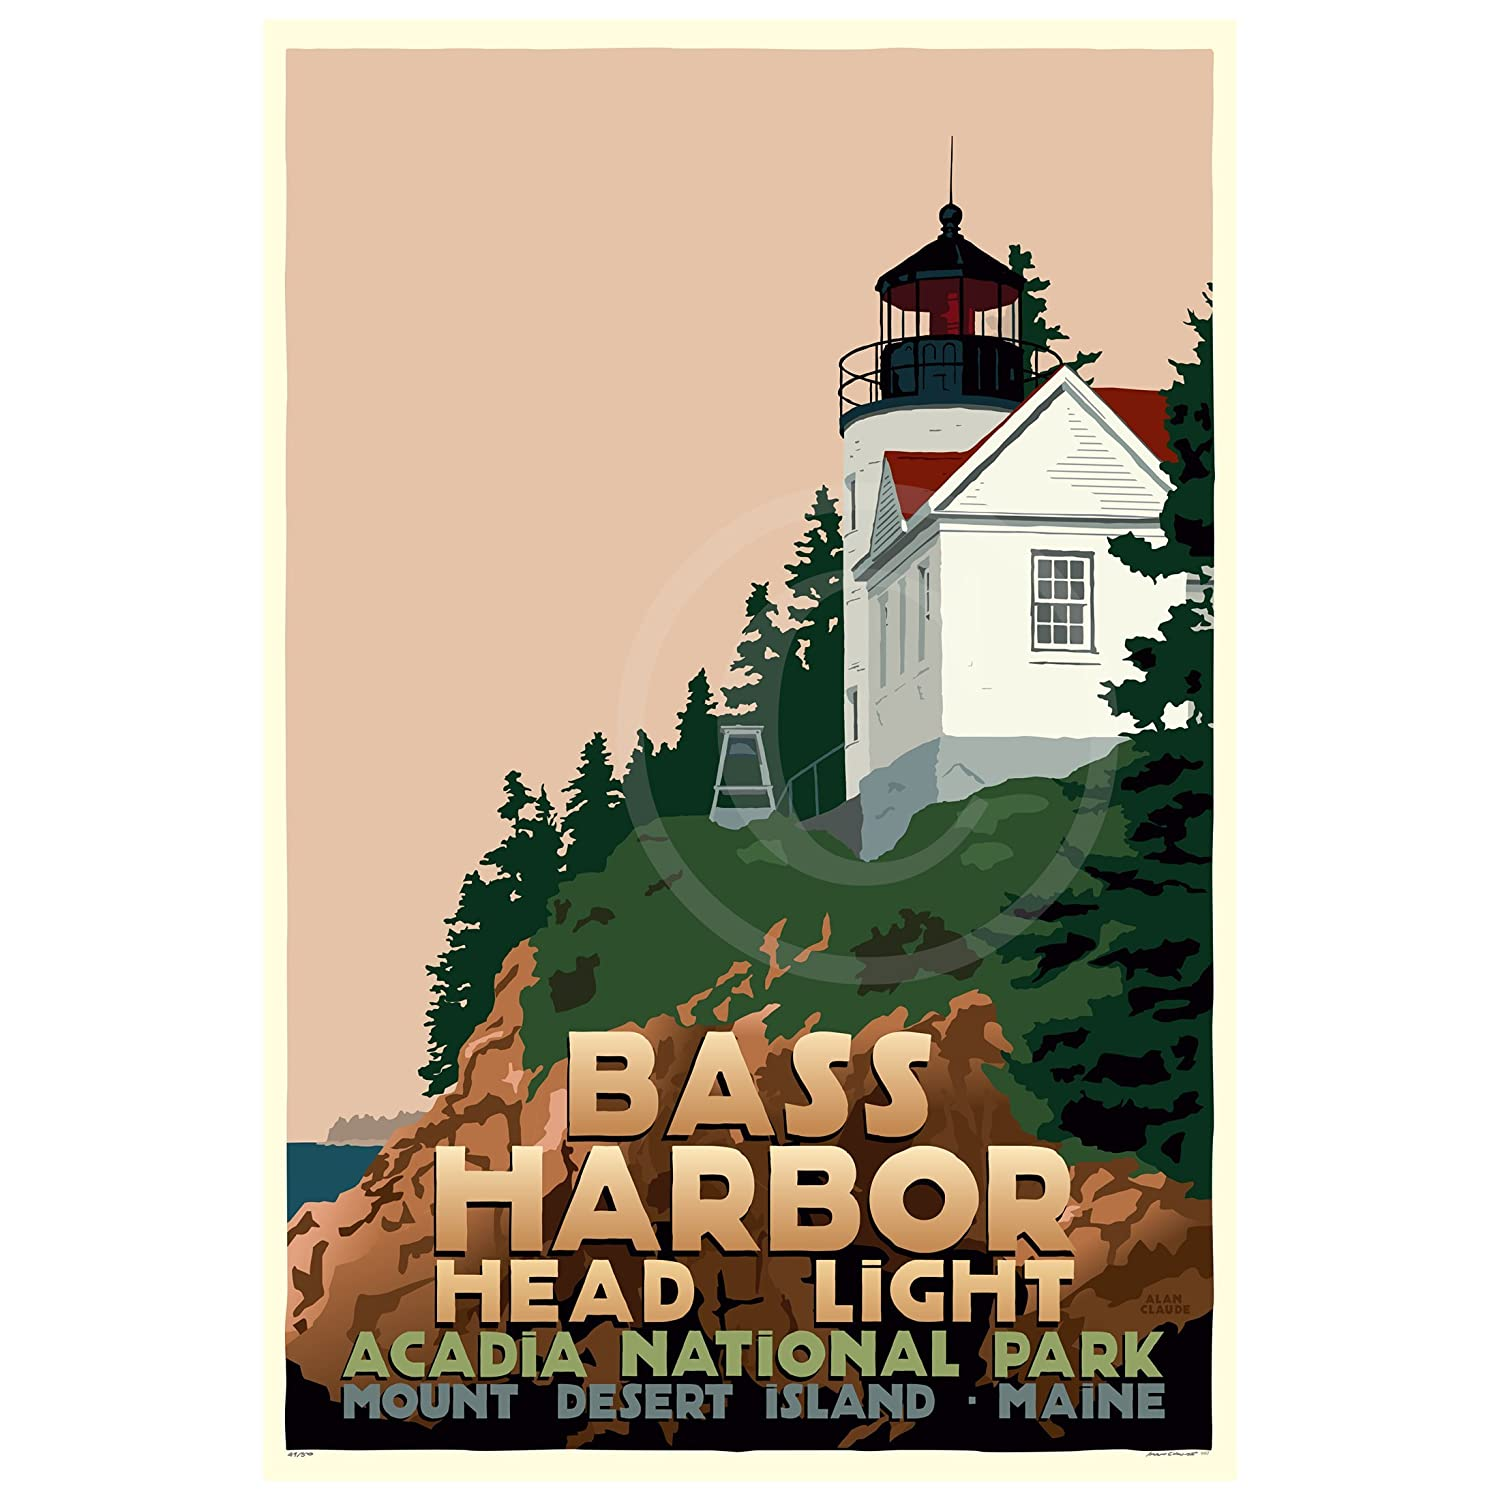 Bass Harbor Head Light Maine Print 24x36 Travel Wall Indianapolis Mall Poster D Brand Cheap Sale Venue